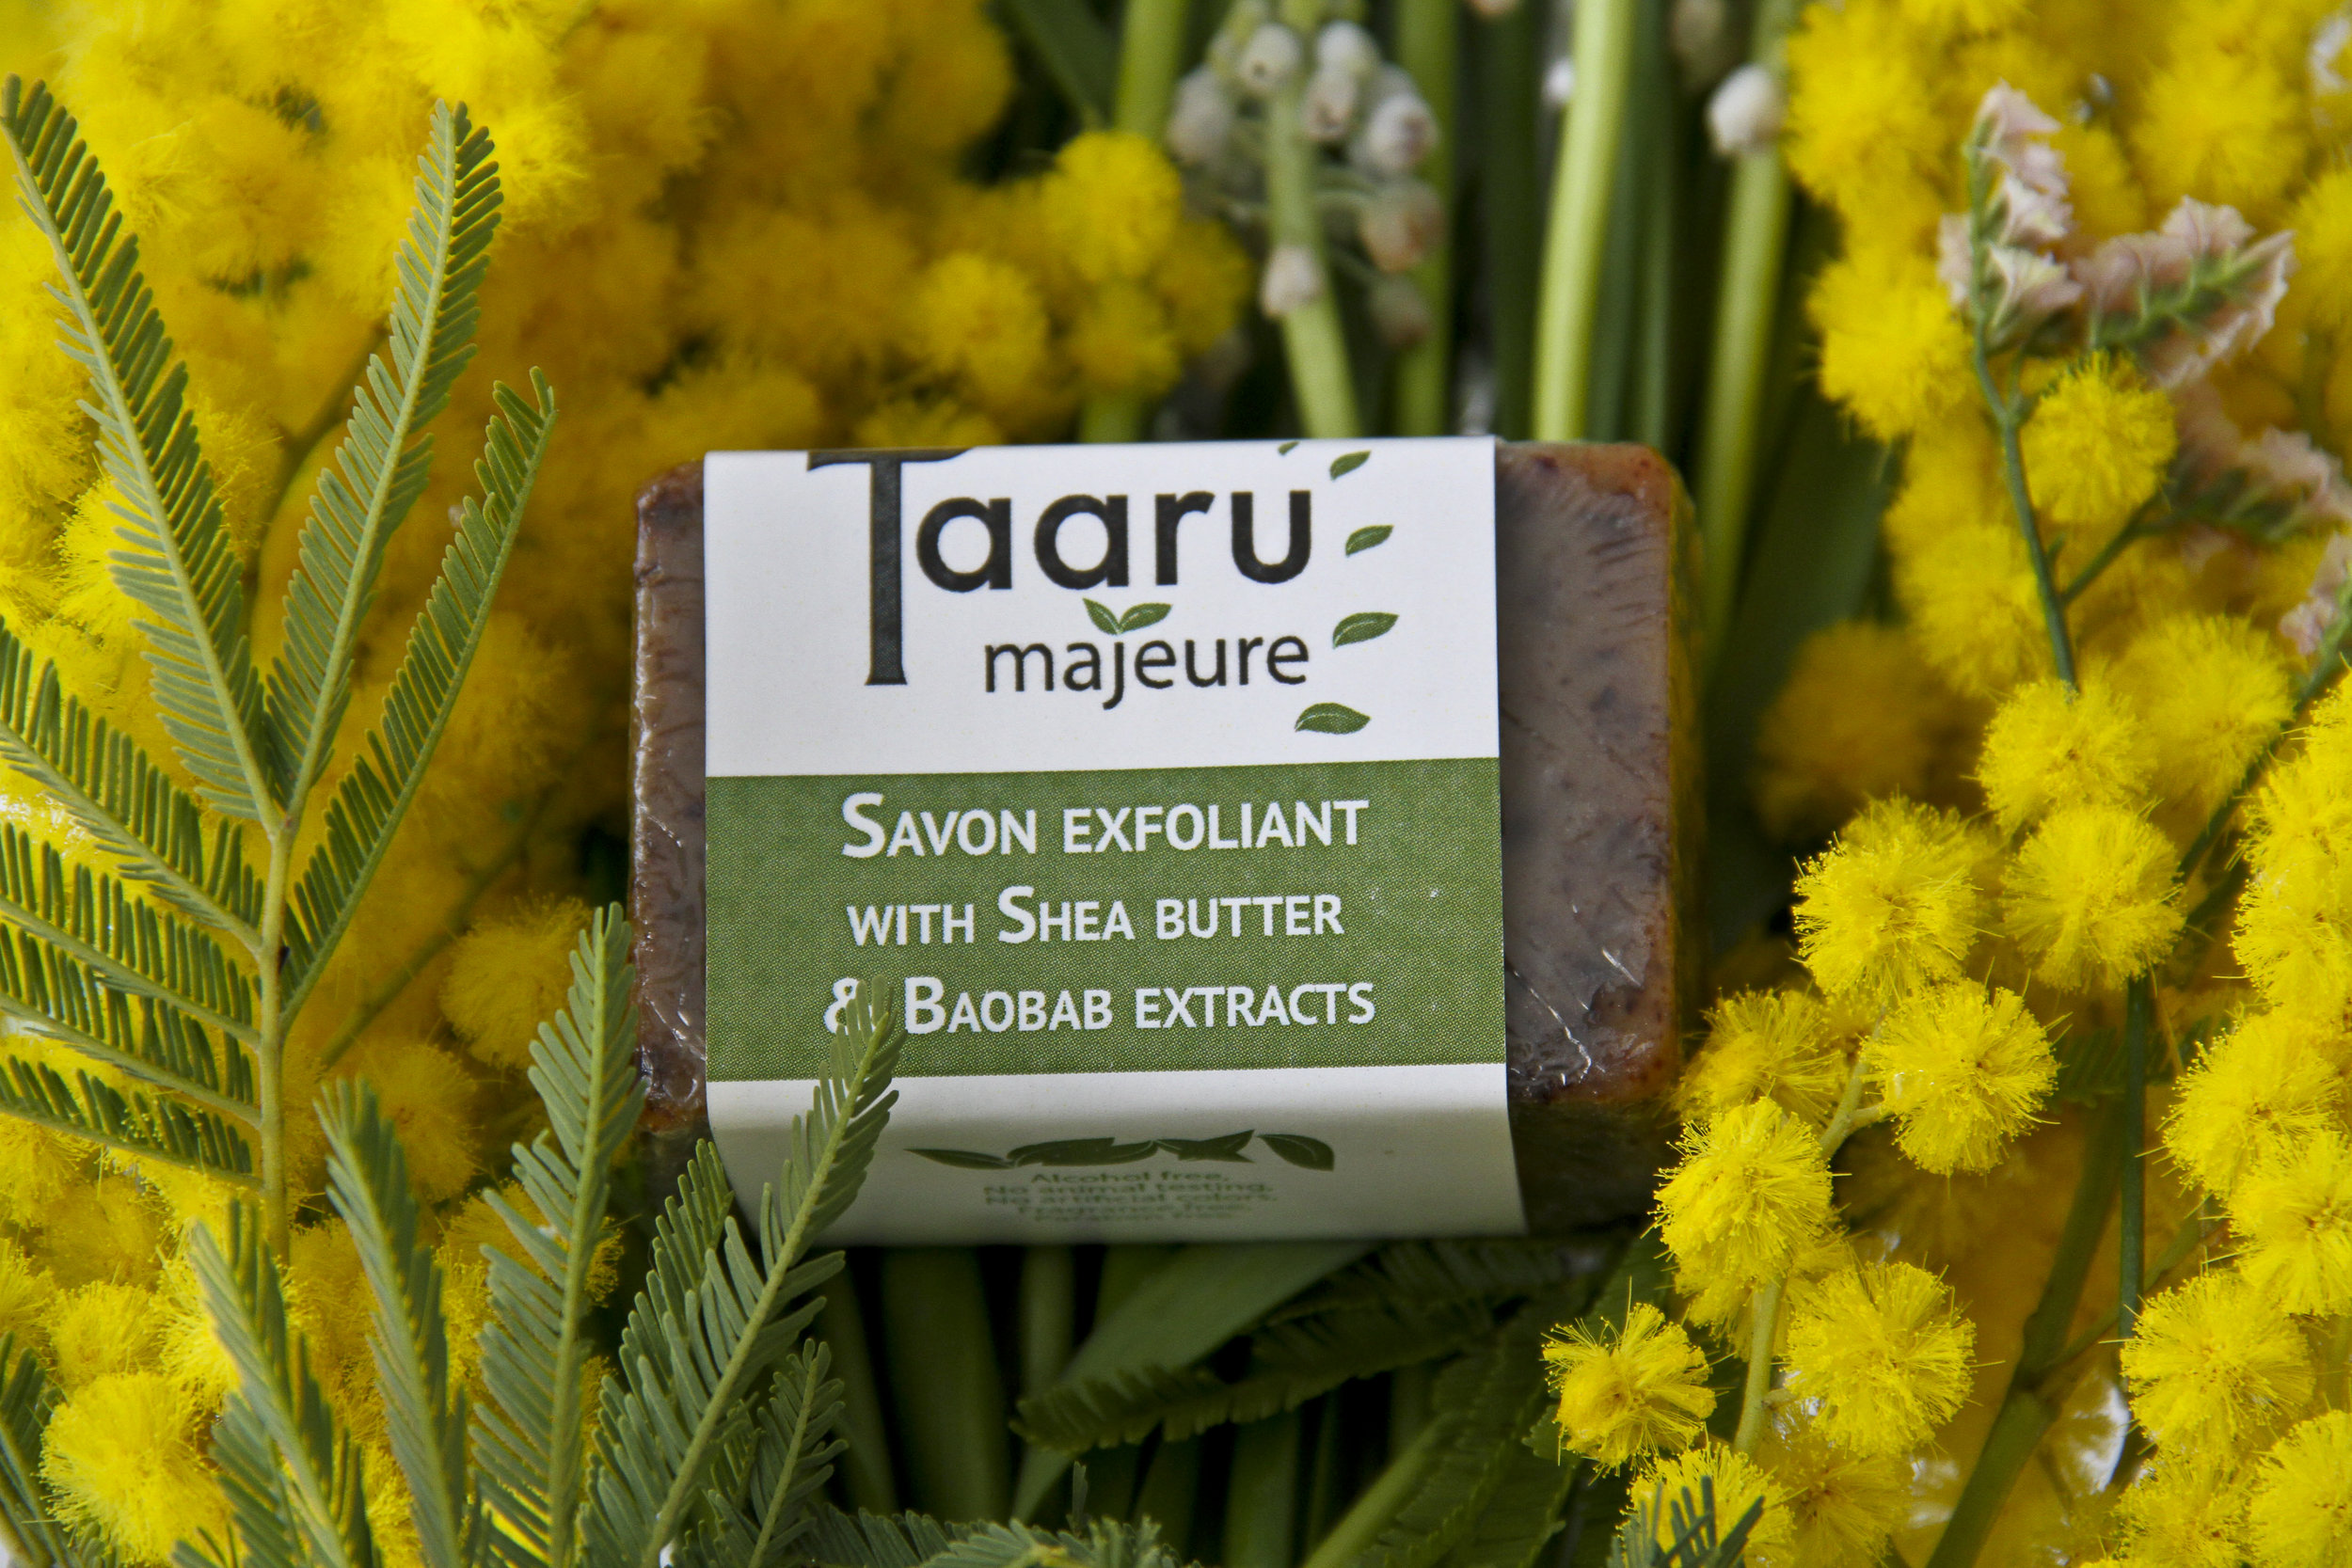 Savon Exfoliant Soap with Shea Butter